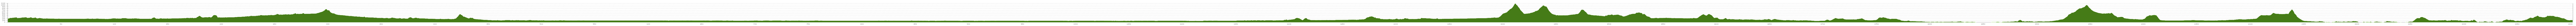 Elevation profile Cycle Route EuroVelo: Eastern Europe Route - leg Hungary